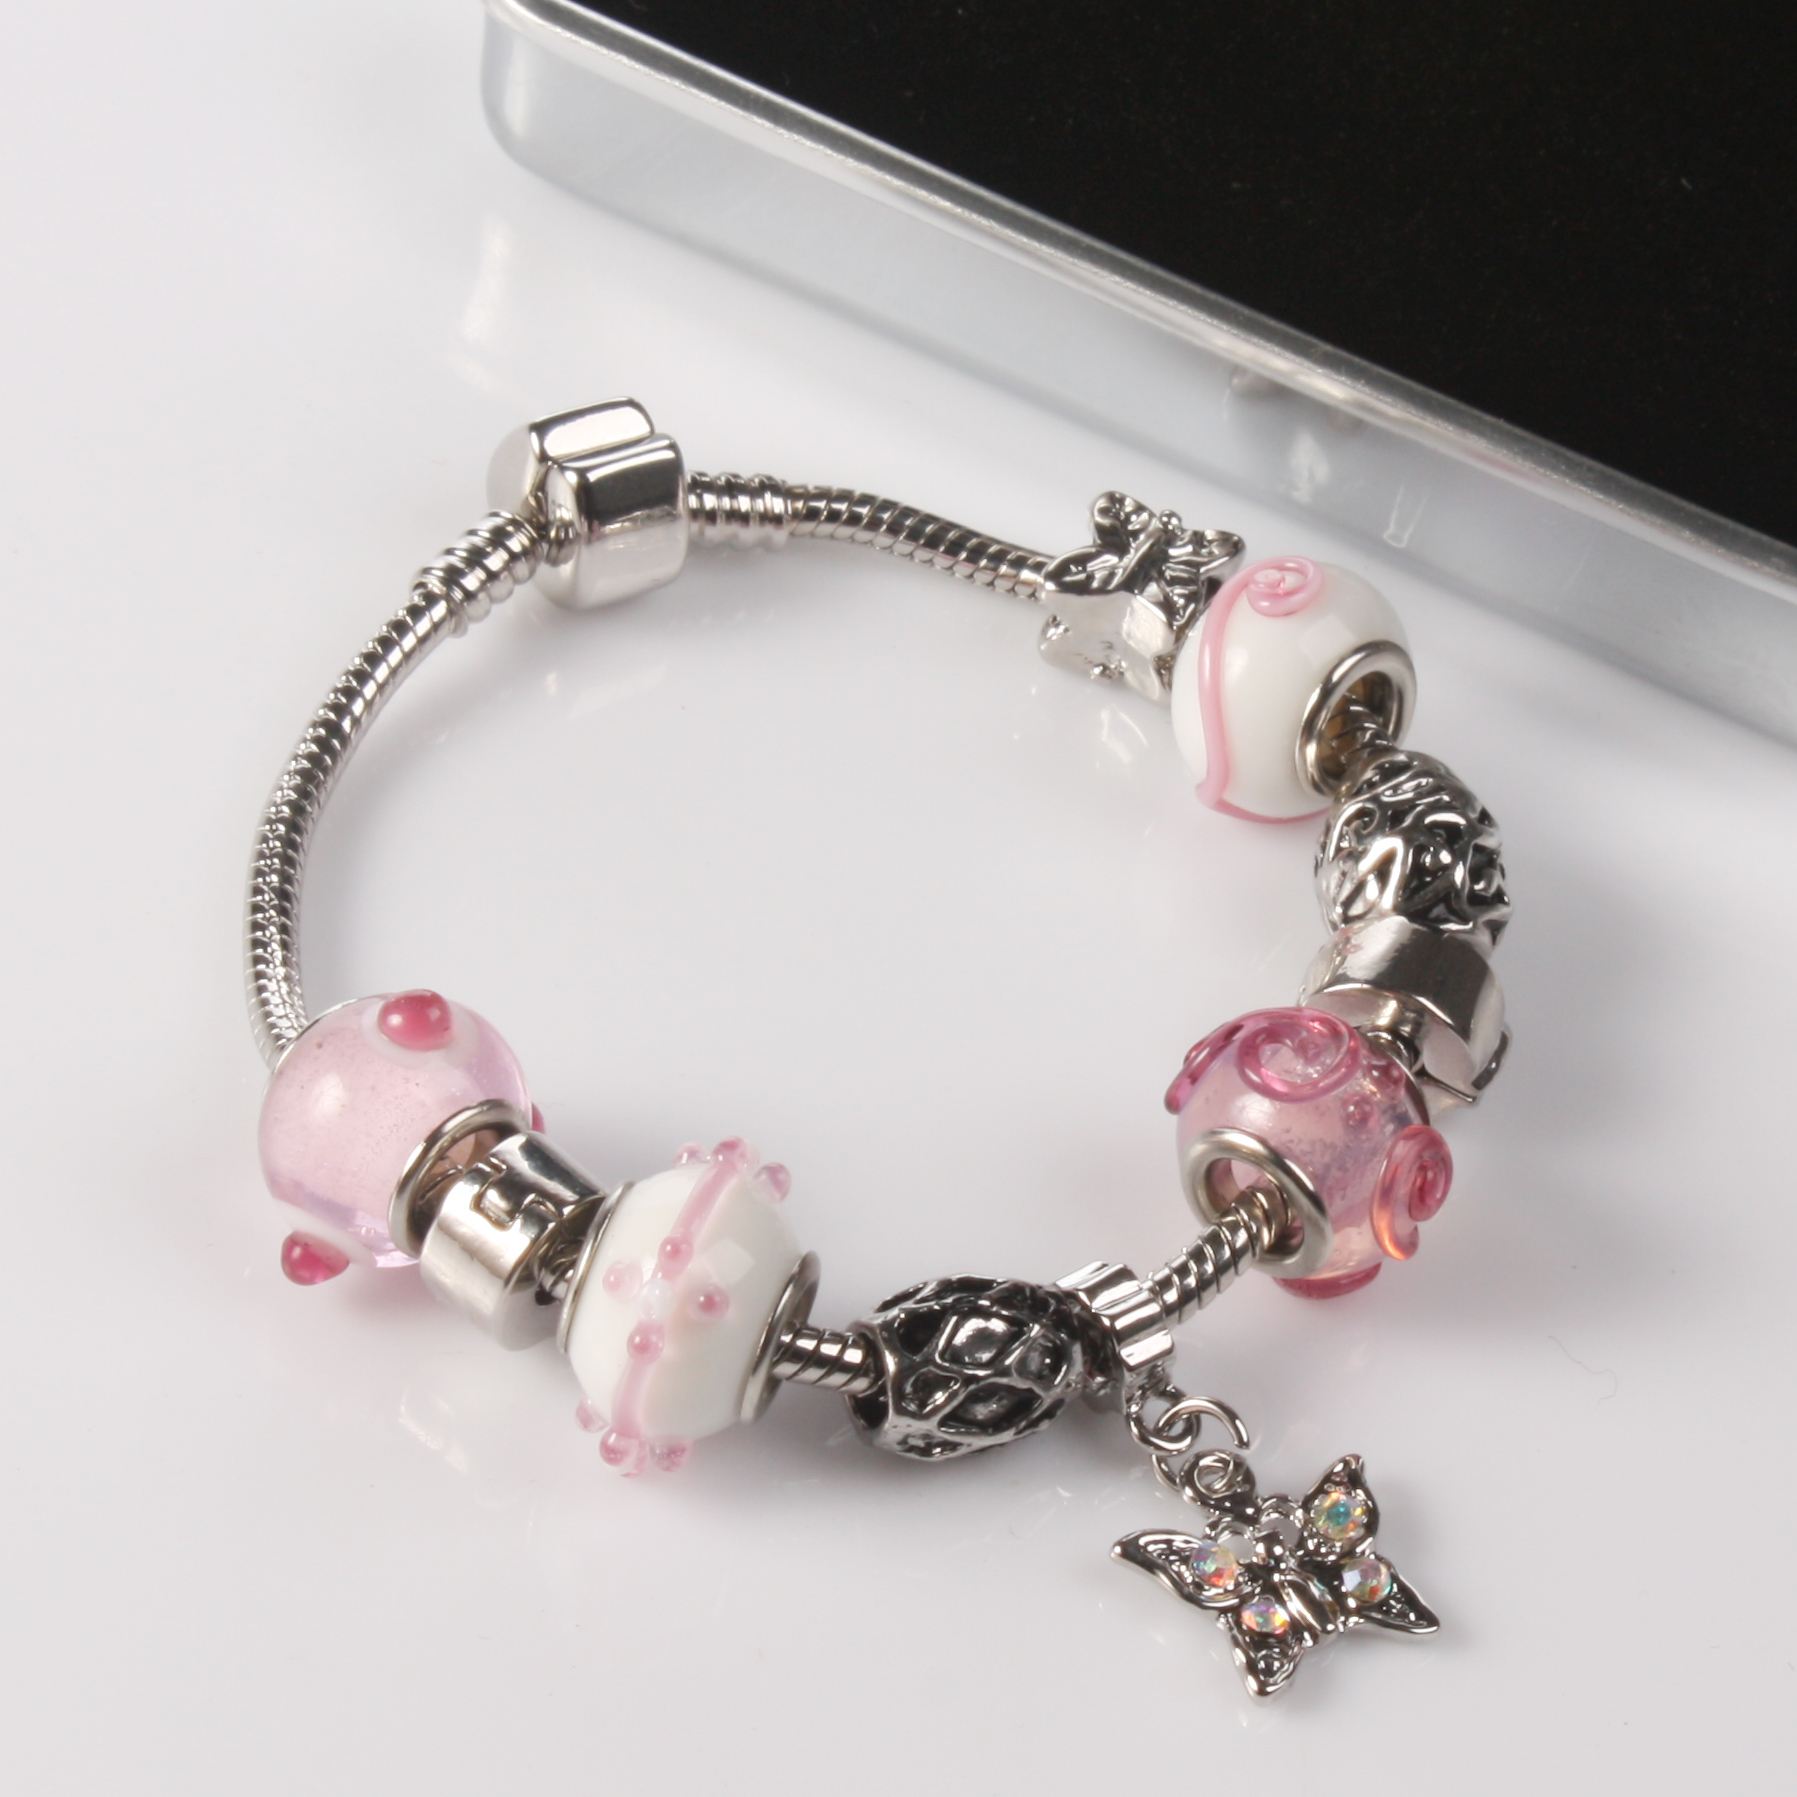 Ogle Charm Bracelet With Personalised Chrome Box - Sweet Pink Design - Jewellery Gifts